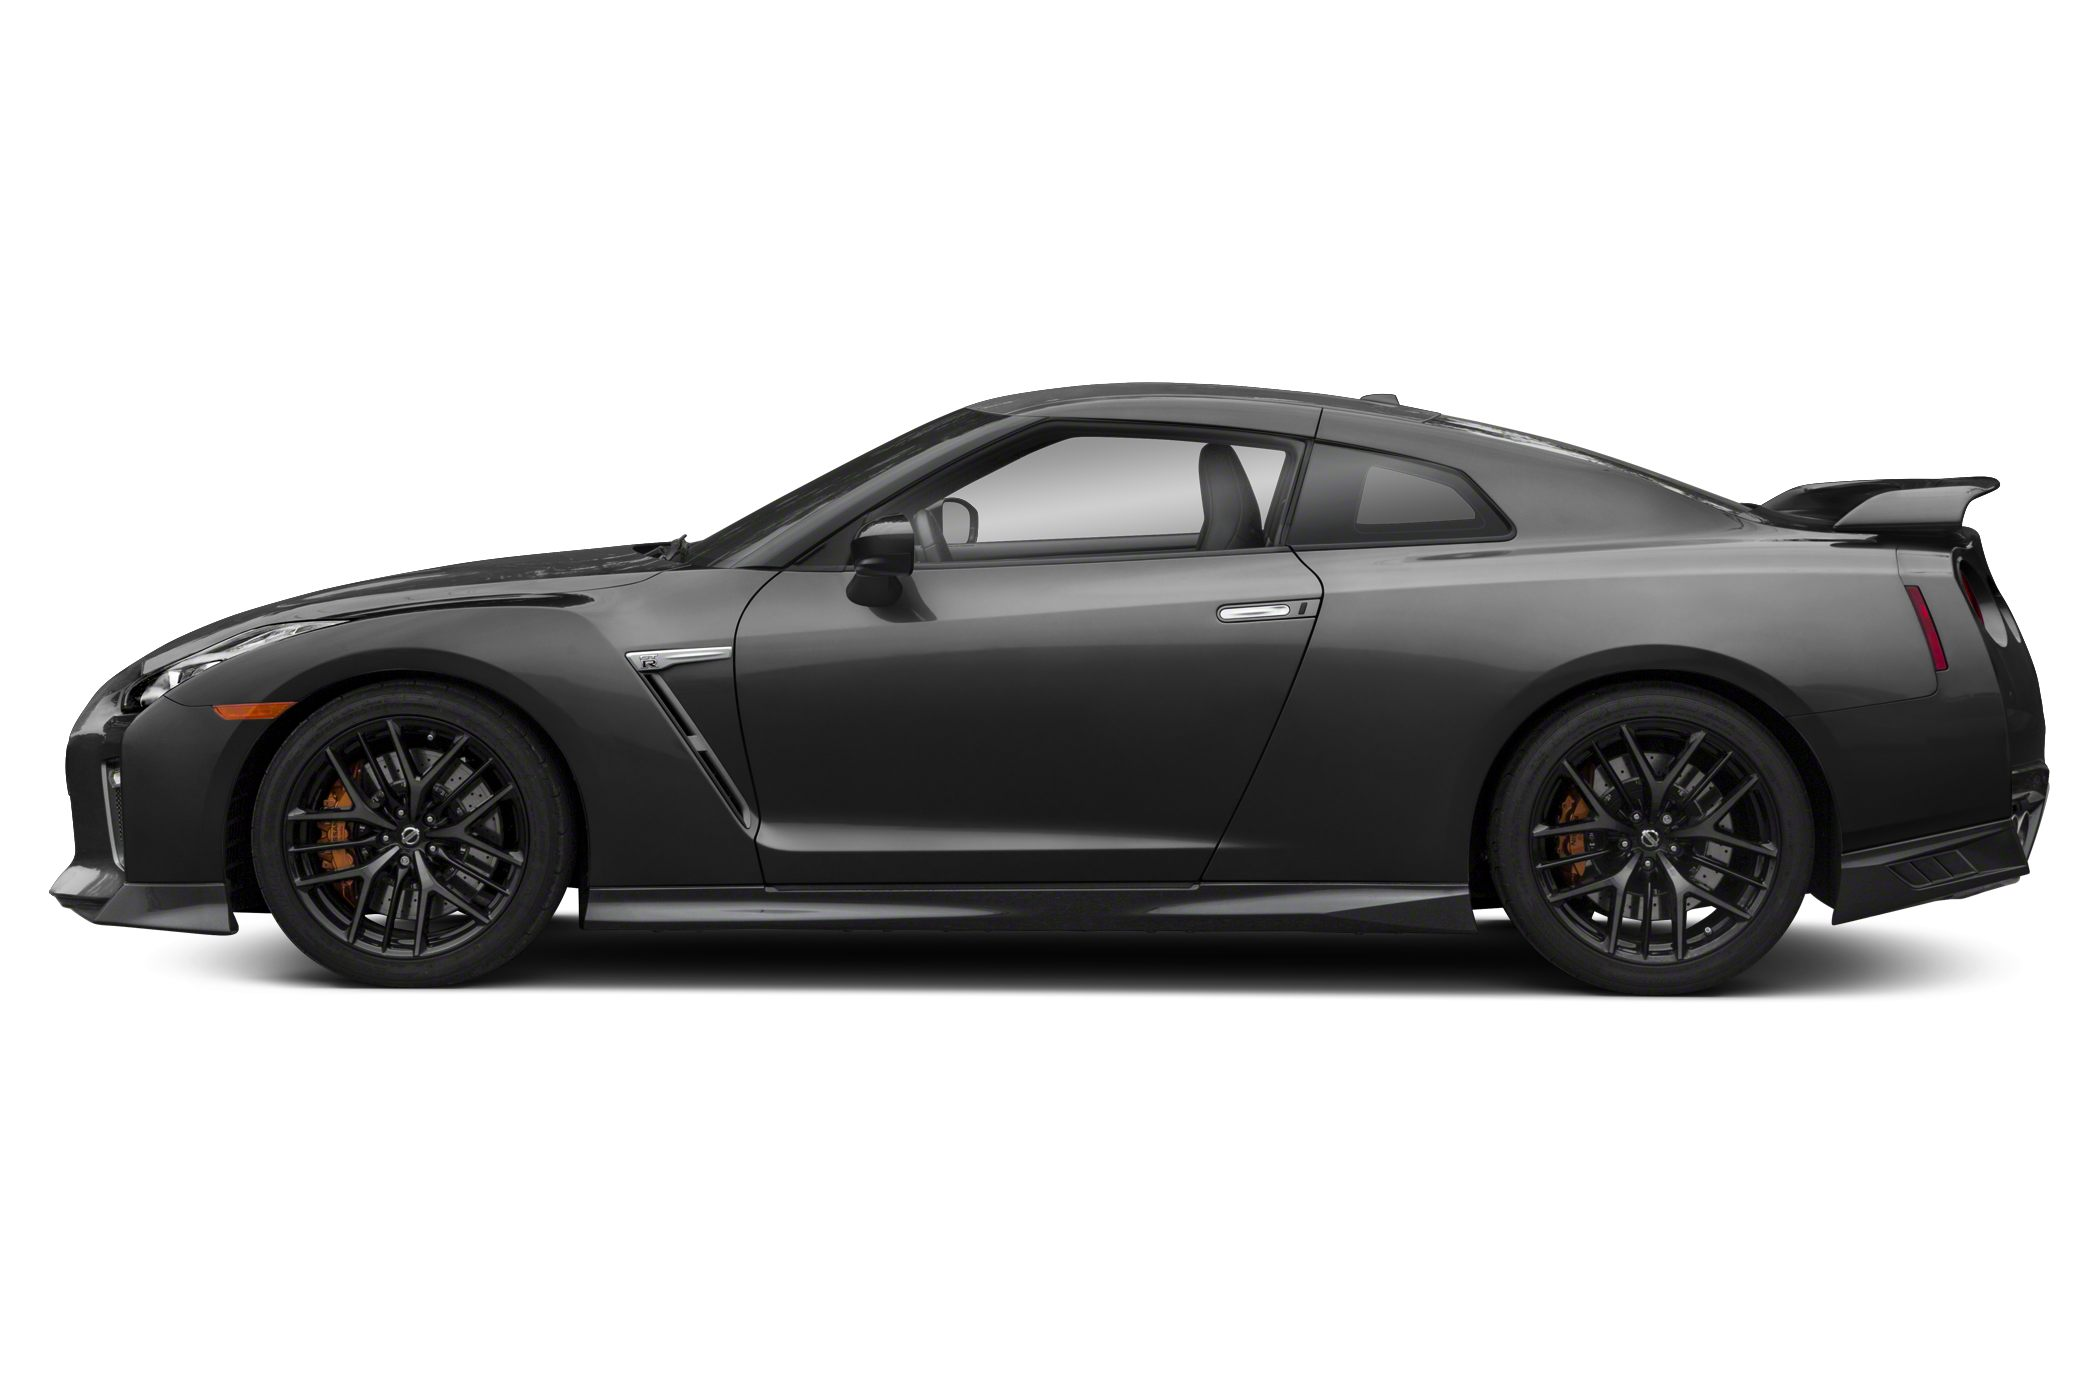 Used Nissan Gt-r for Sale New 2019 Nissan Gt R for Sale In Cobourg Cobourg Nissan